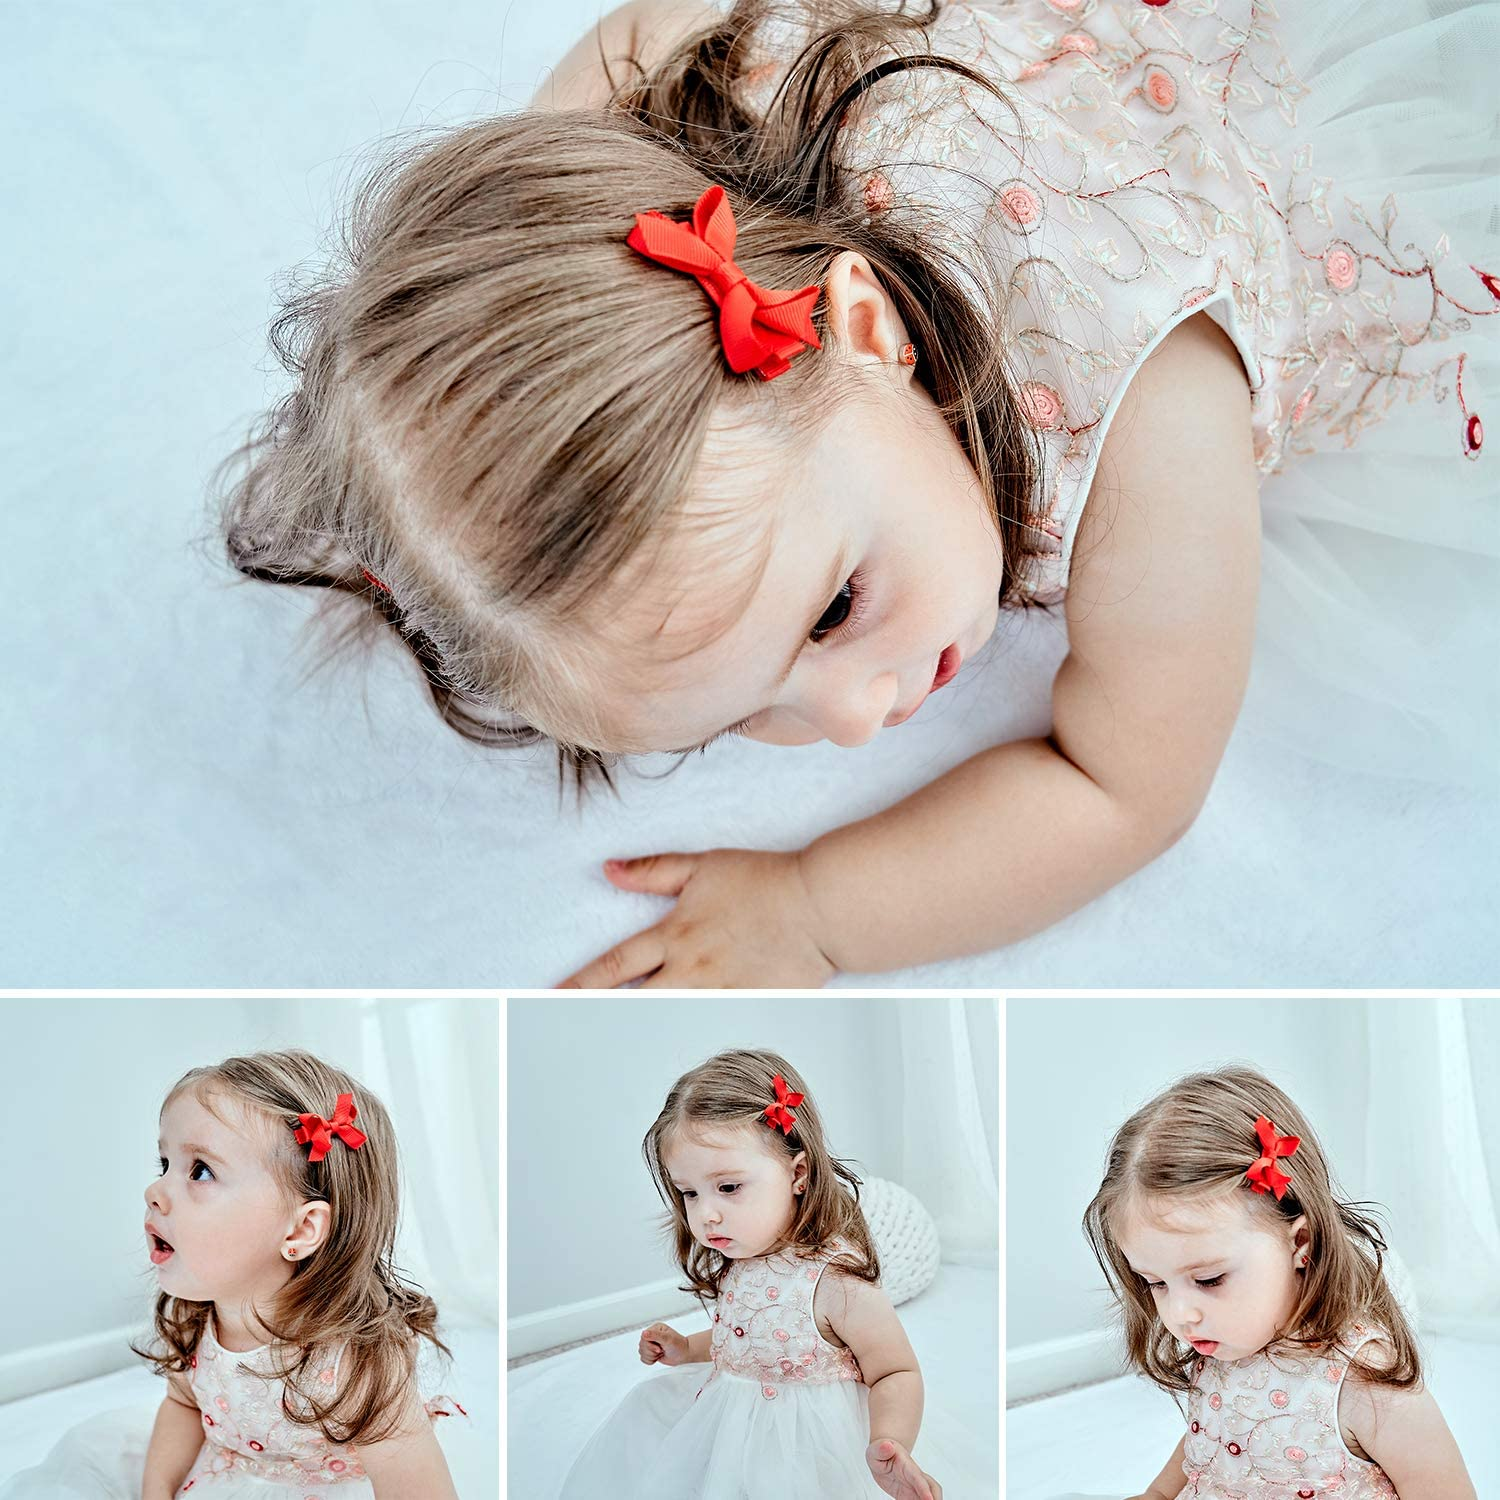 20pcs 1.6inch Tiny Hair Bows Fully Lined Hair Clips for Baby Fine Hair Infants